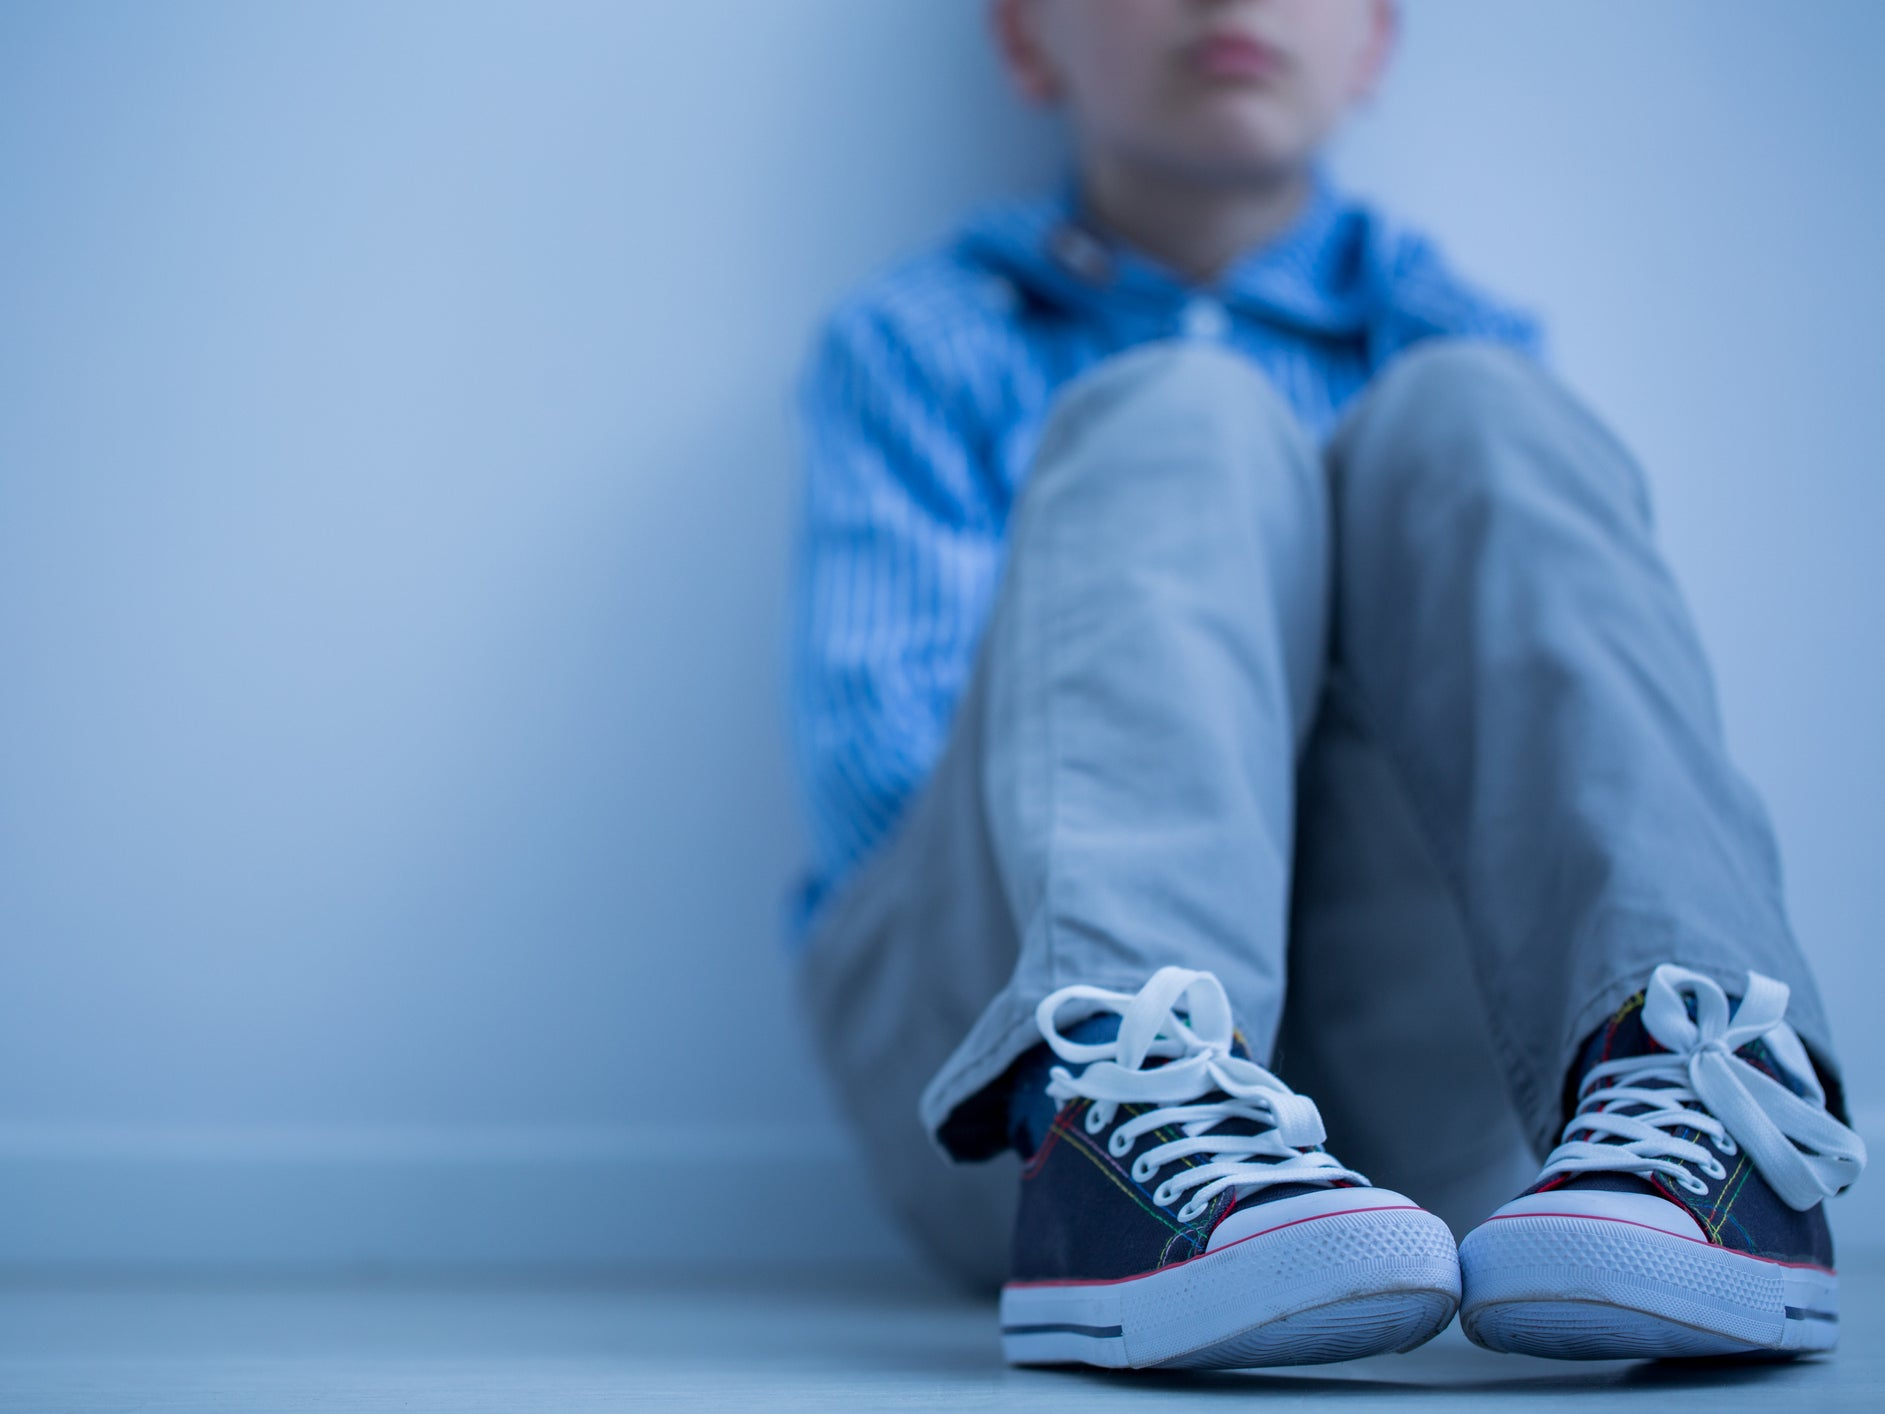 Children - latest news, breaking stories and comment - The